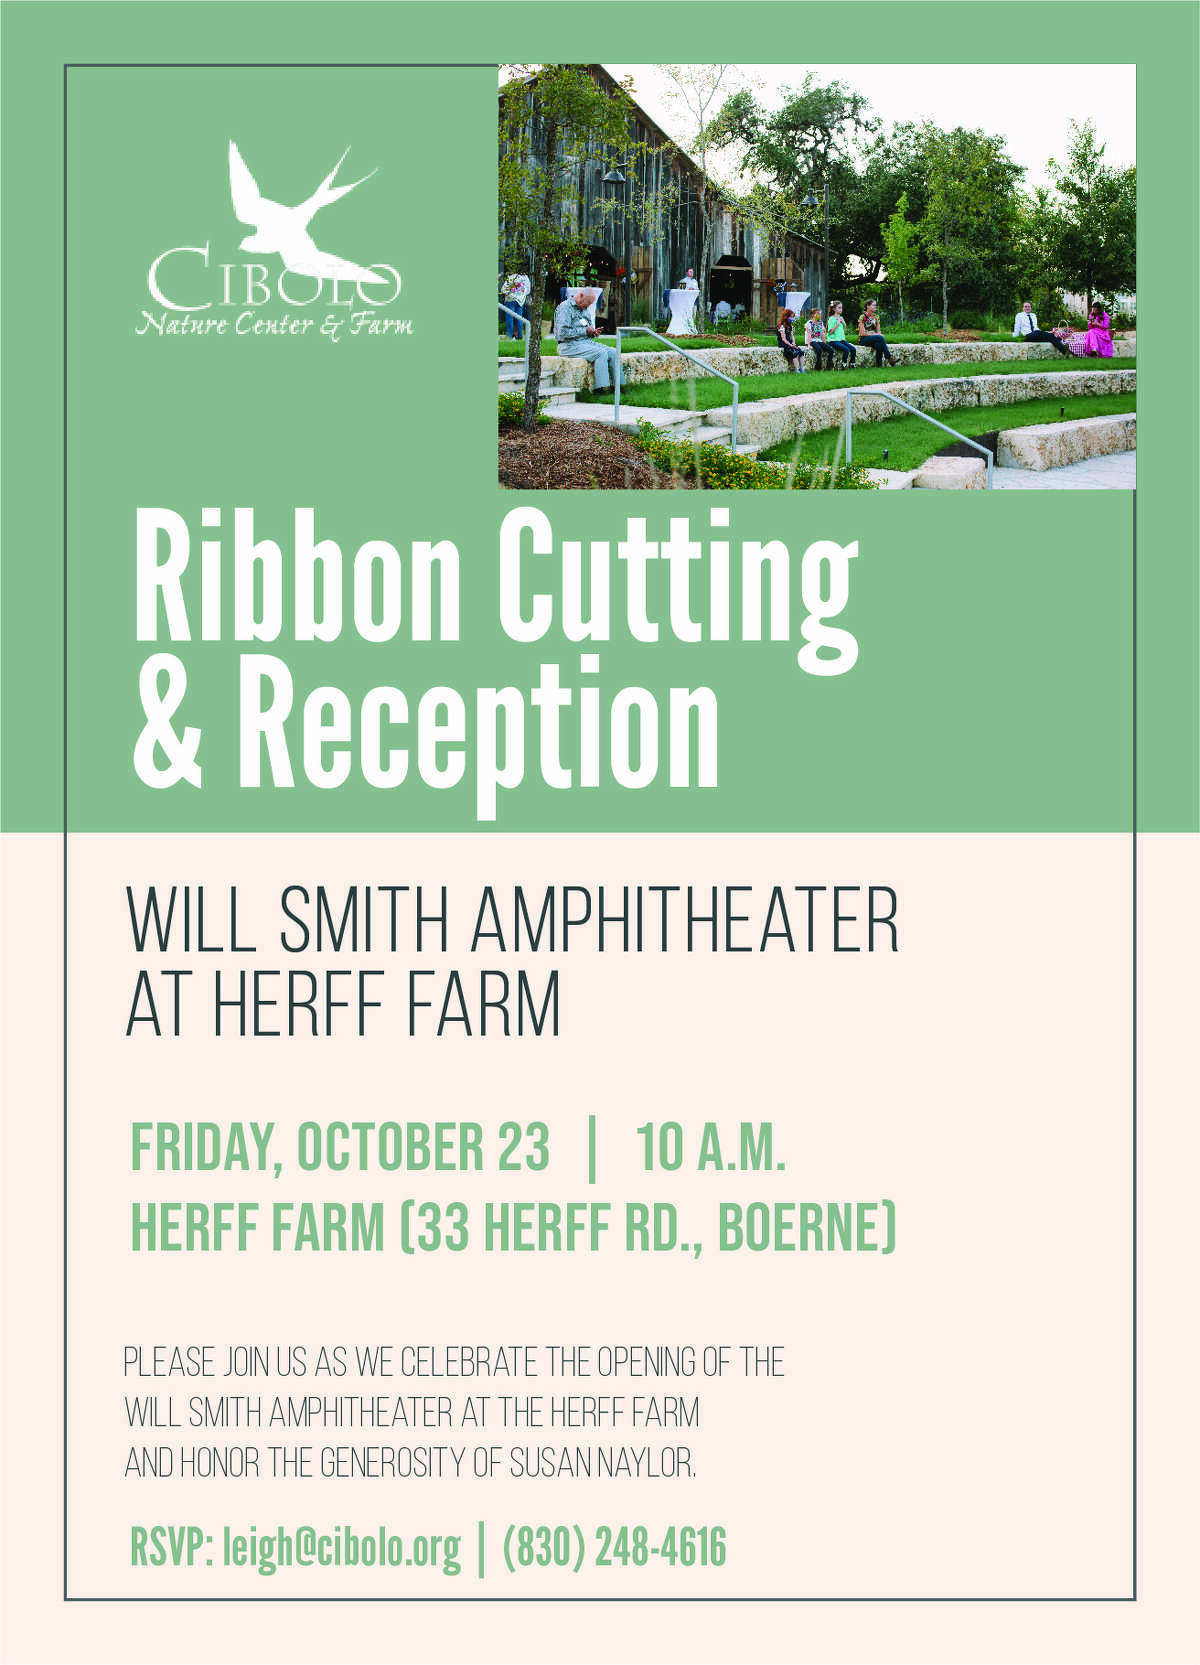 The Will Smith Amphitheater is a part of the new expansions at the Herff Farm.